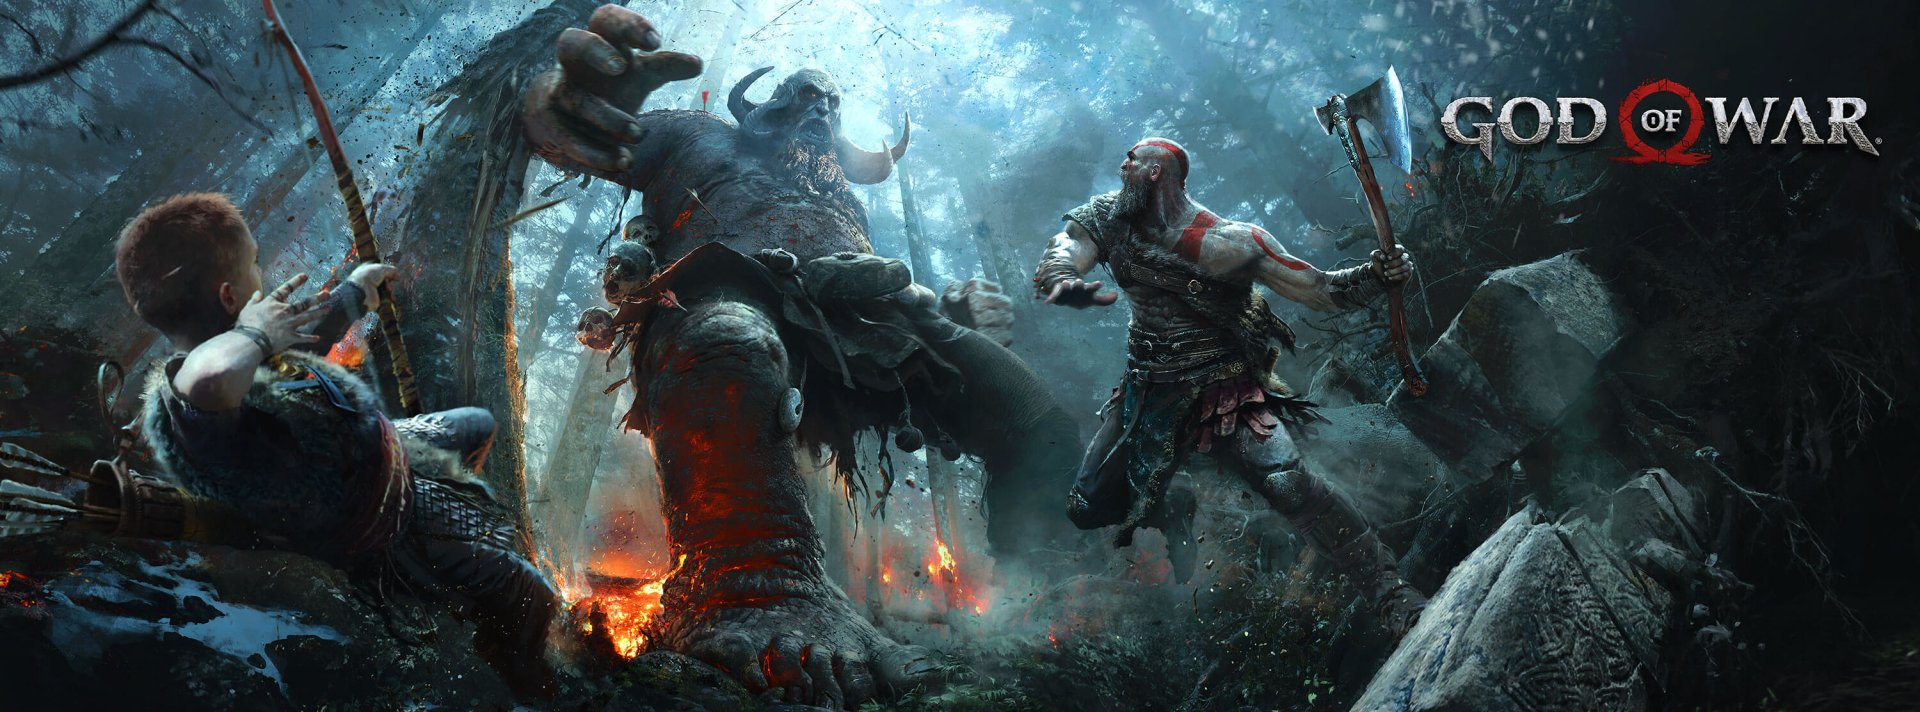 101 God Of War 2018 Hd Wallpapers Background Images